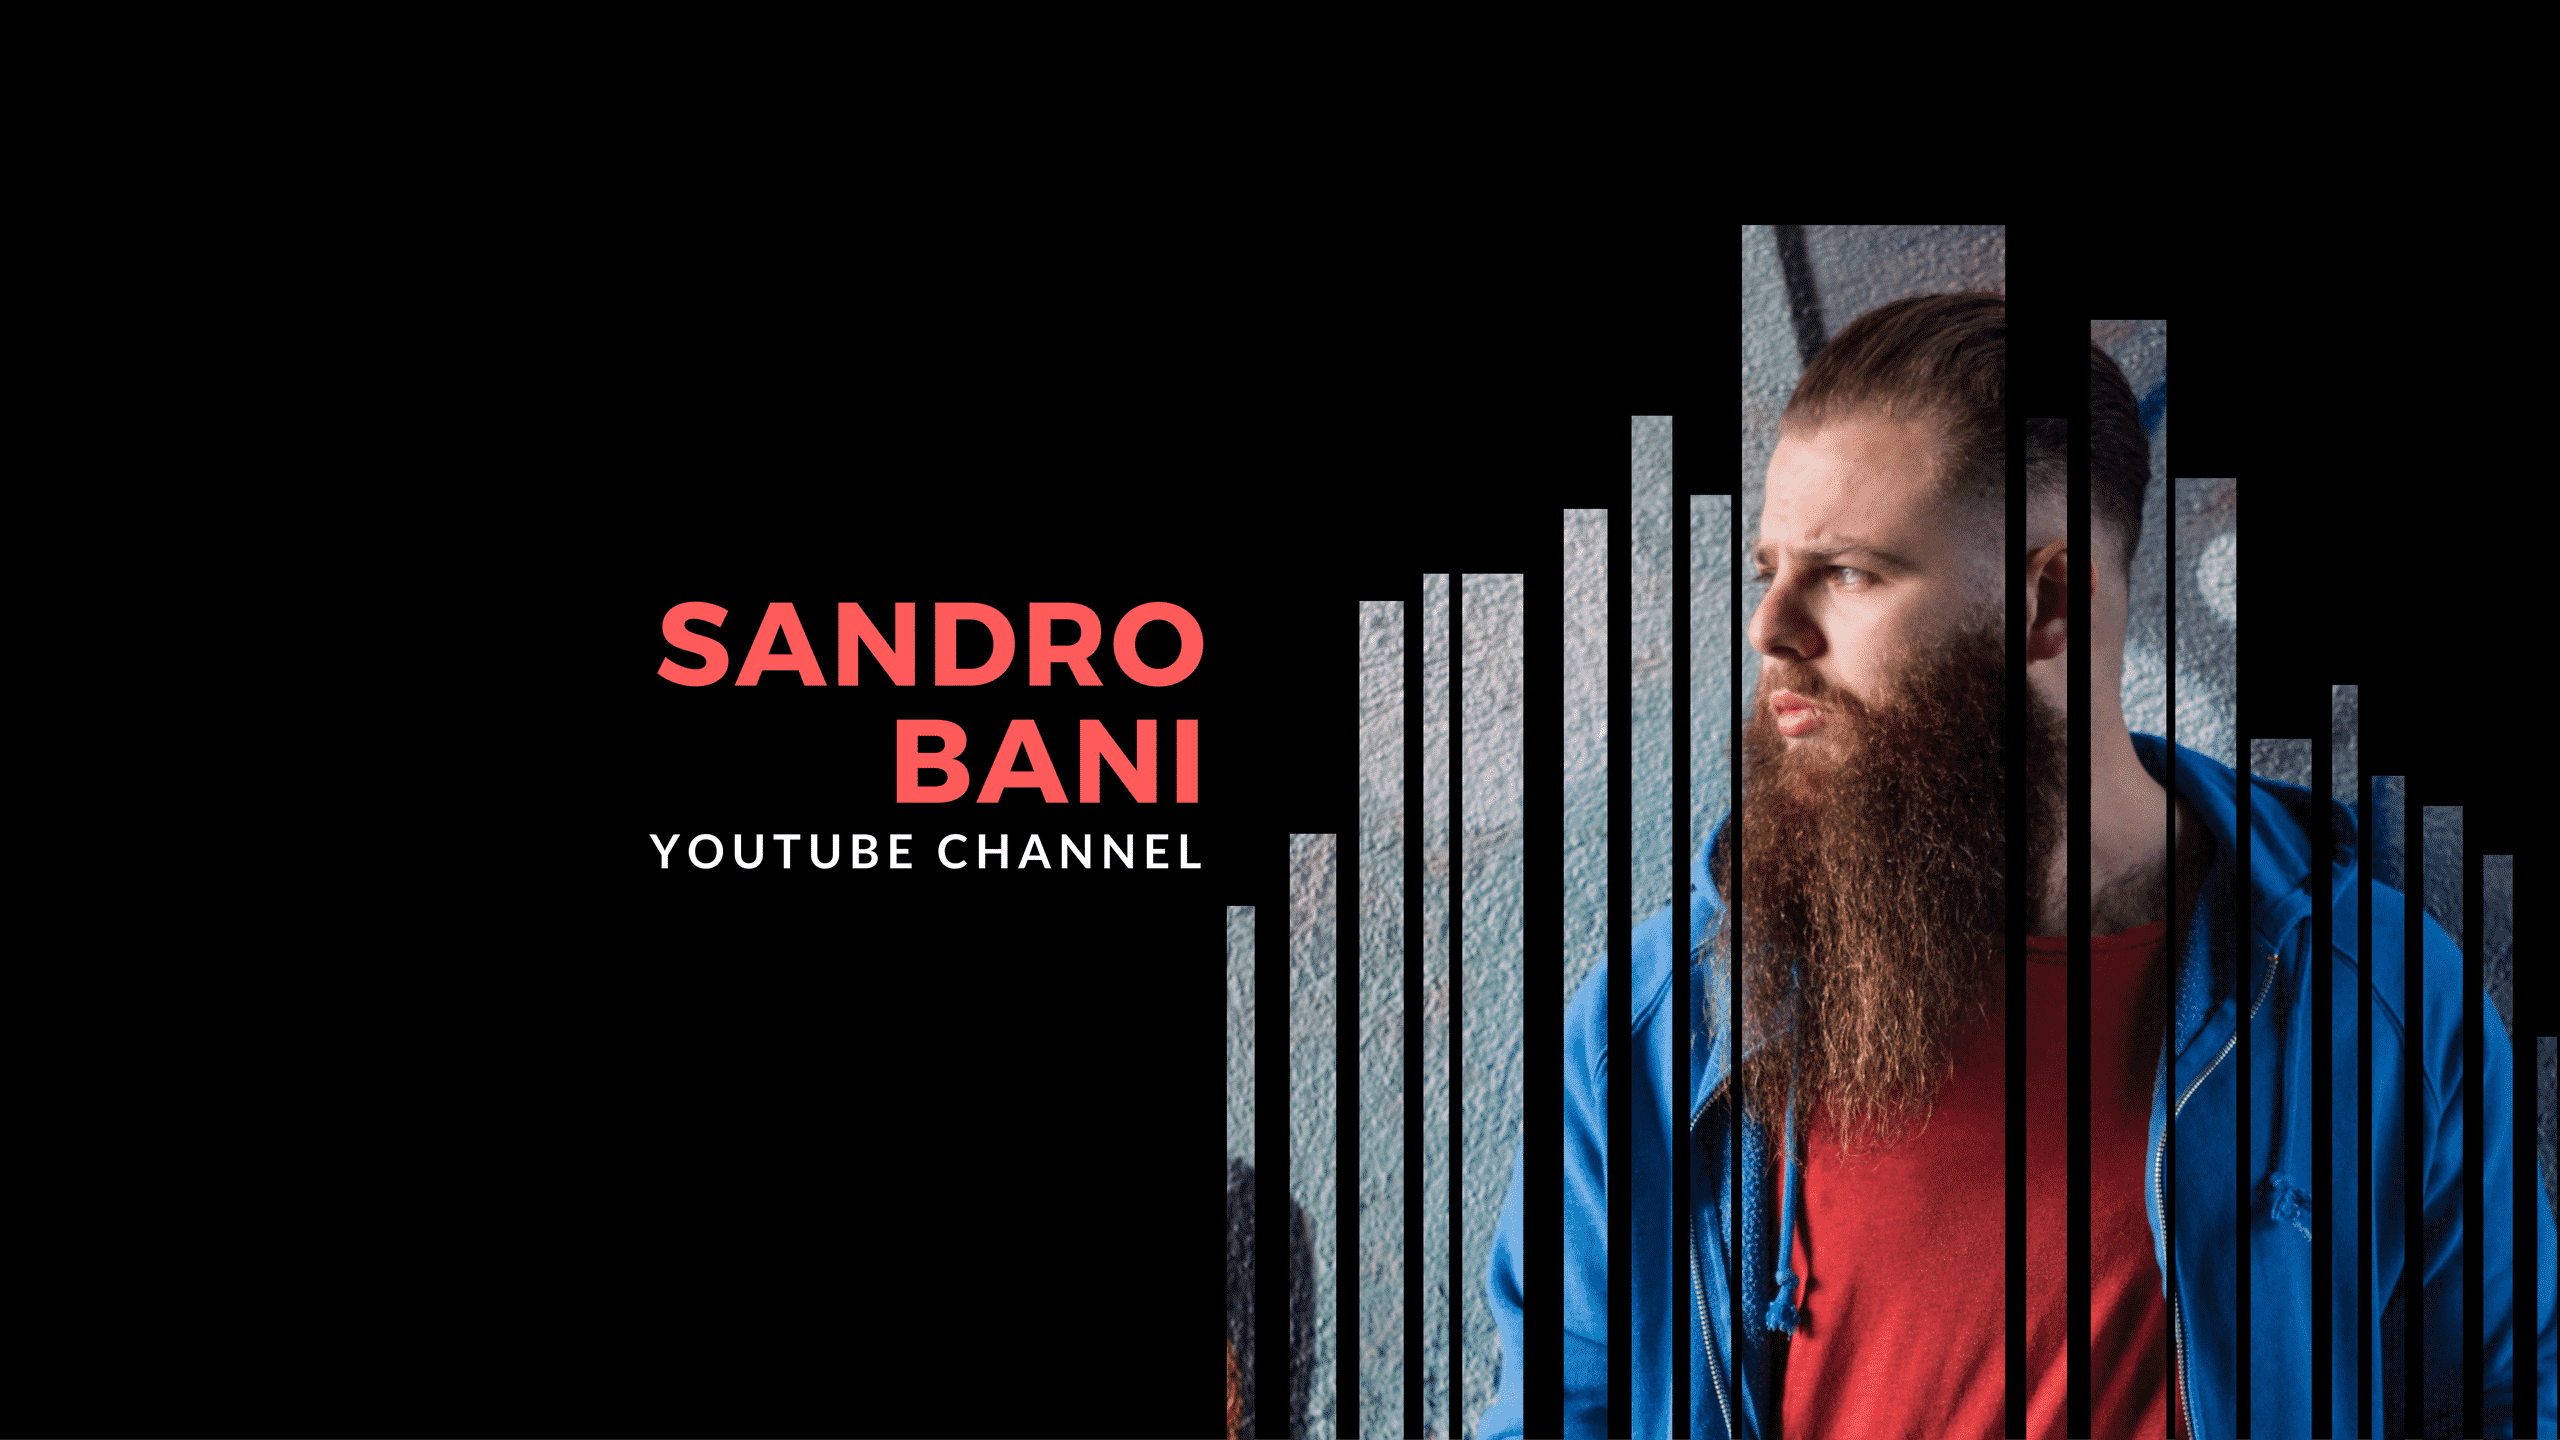 Sandro Bani YouTube Channel